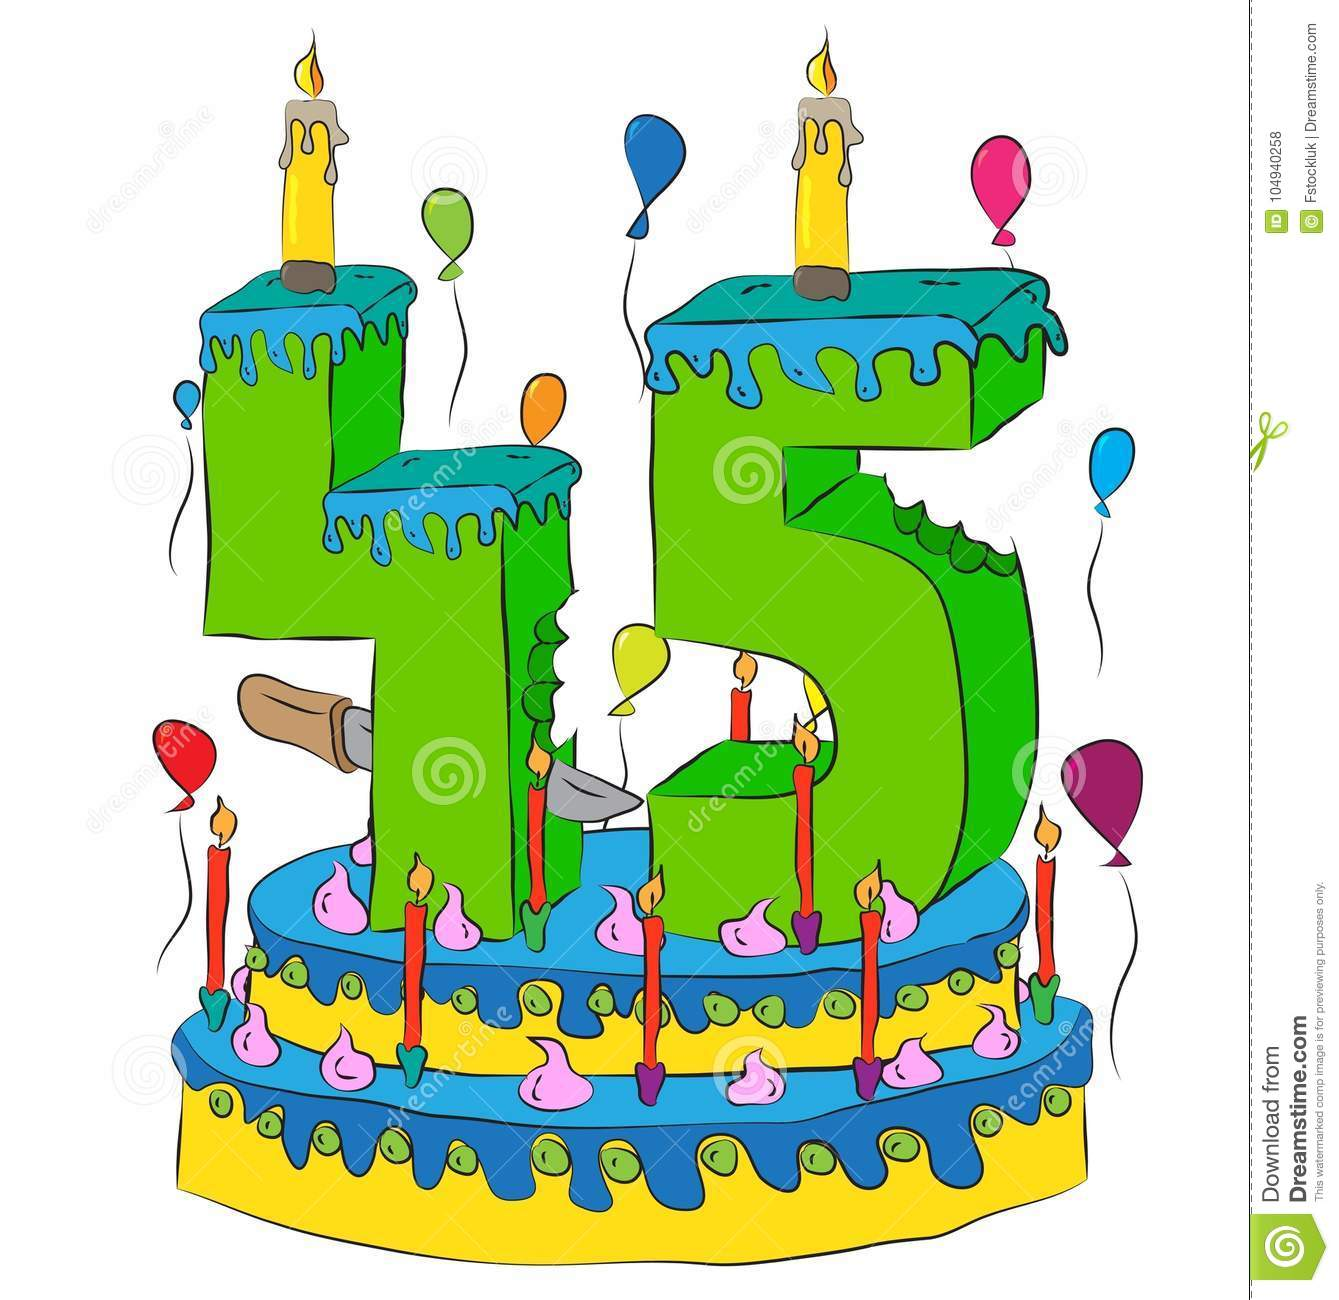 45 Birthday Cake With Number Forty Five Candle Celebrating Fifth Year Of Life Colorful Balloons And Chocolate Frosting